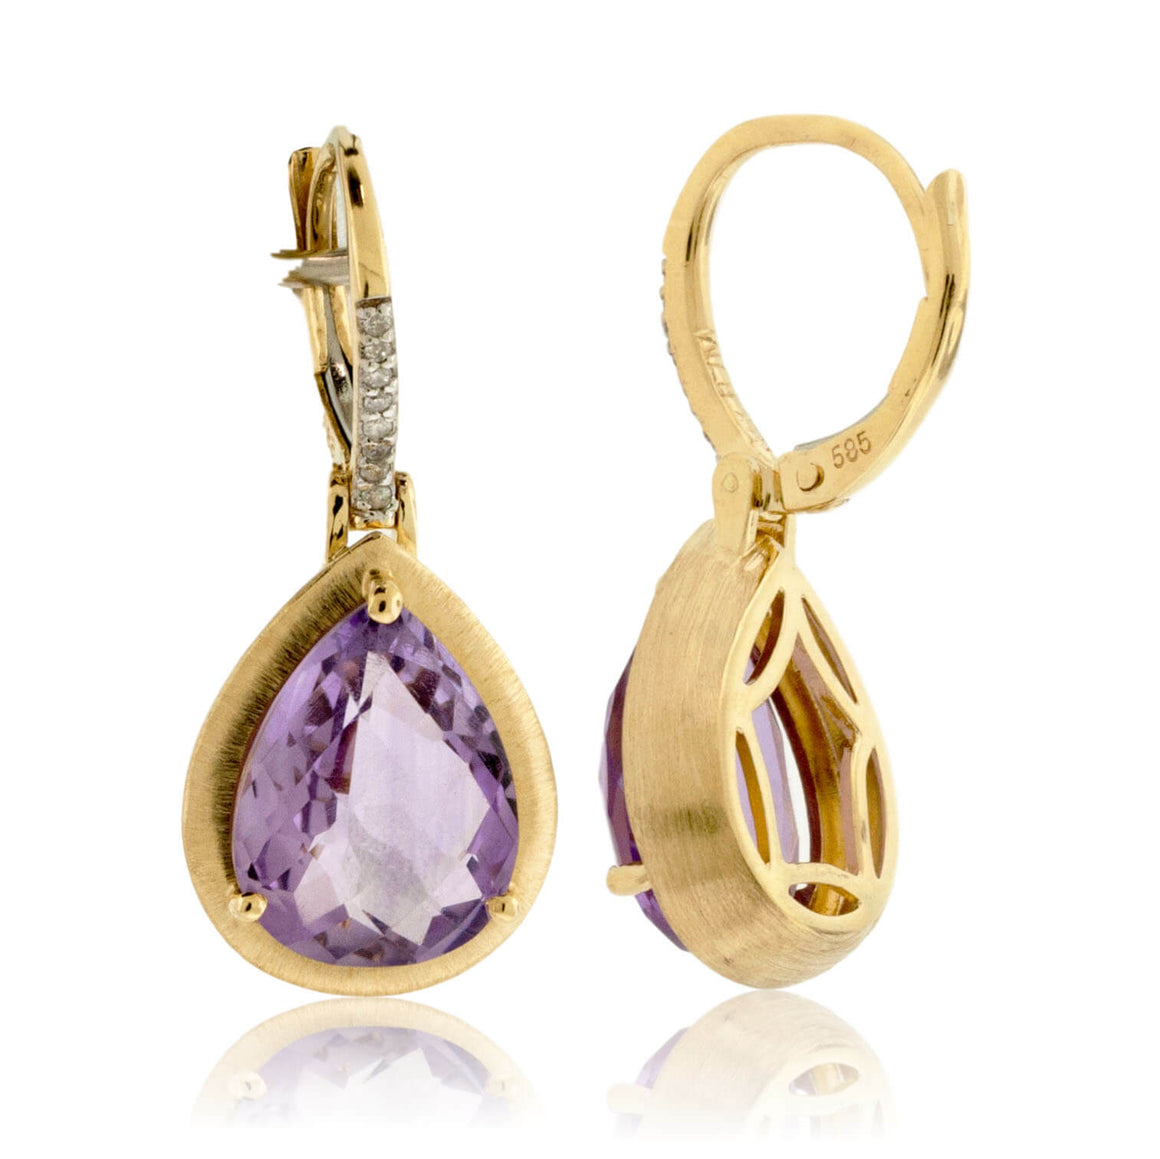 Yellow Gold Textured Amethyst Drop Earrings